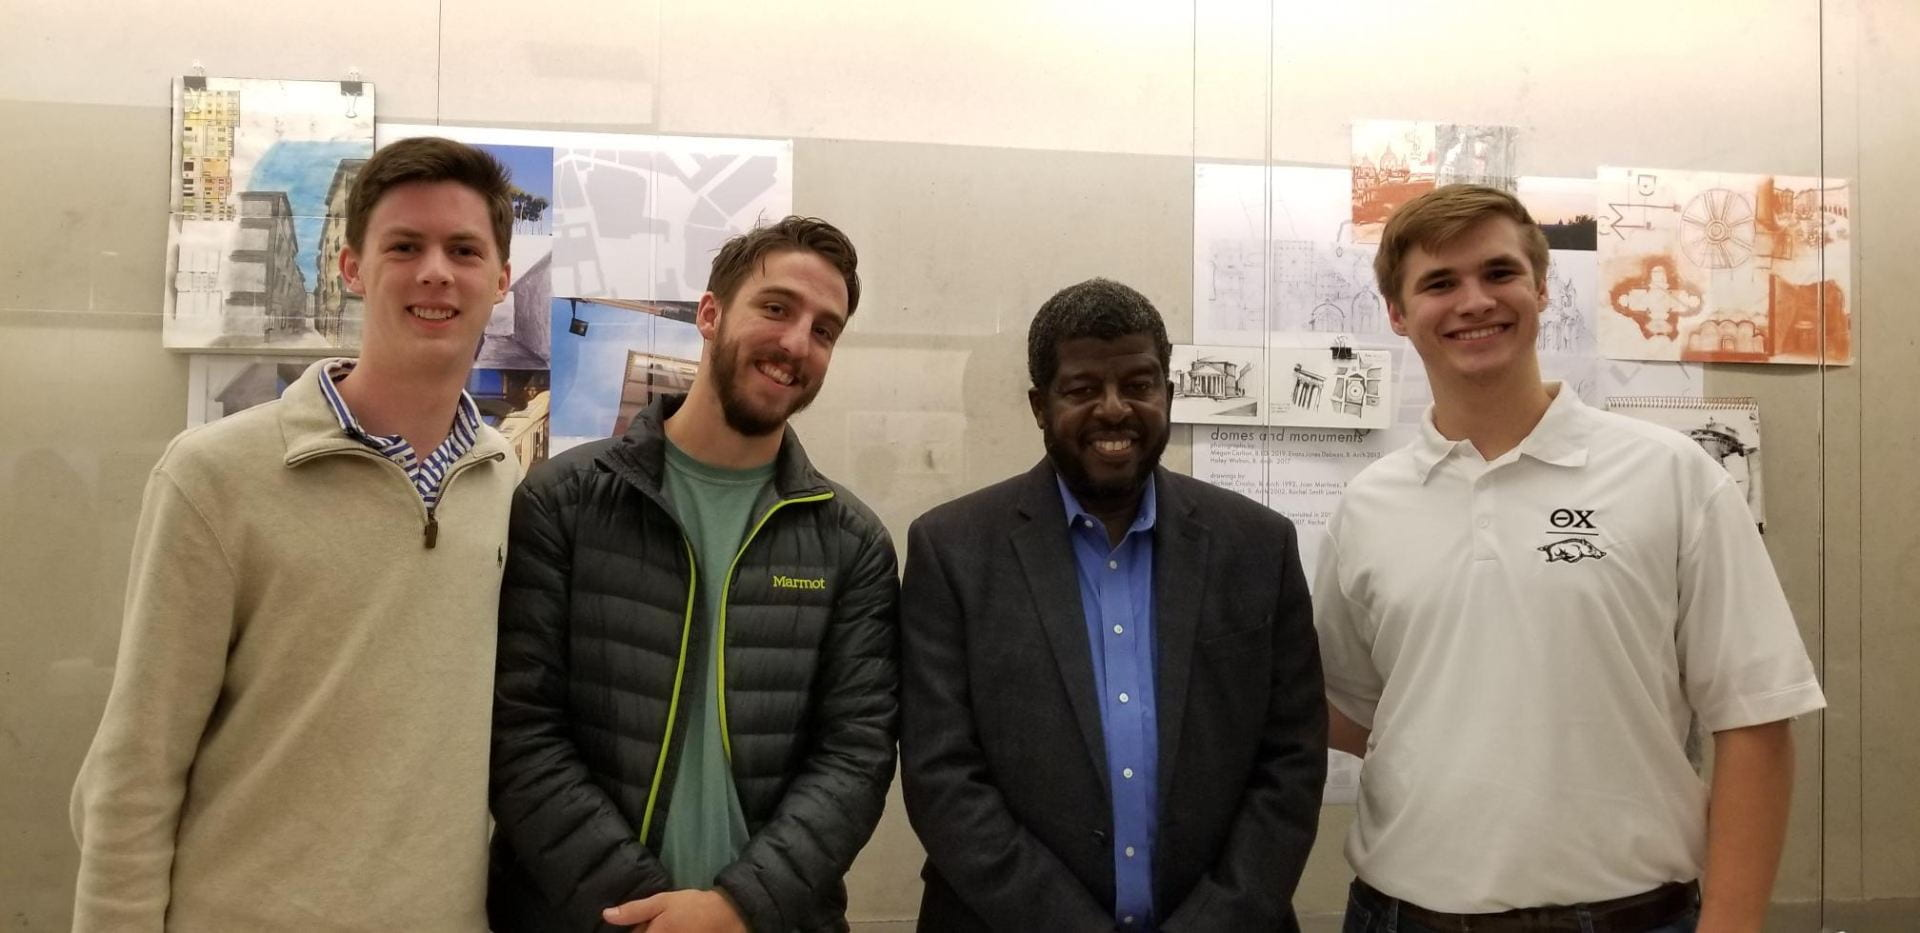 Holmes, third from left spoke with several students who attended the event including William Zurborg, Levi Brown, Prof. Holmes and Jared Pinkerton. Global Ethics Day, Oct. 2018